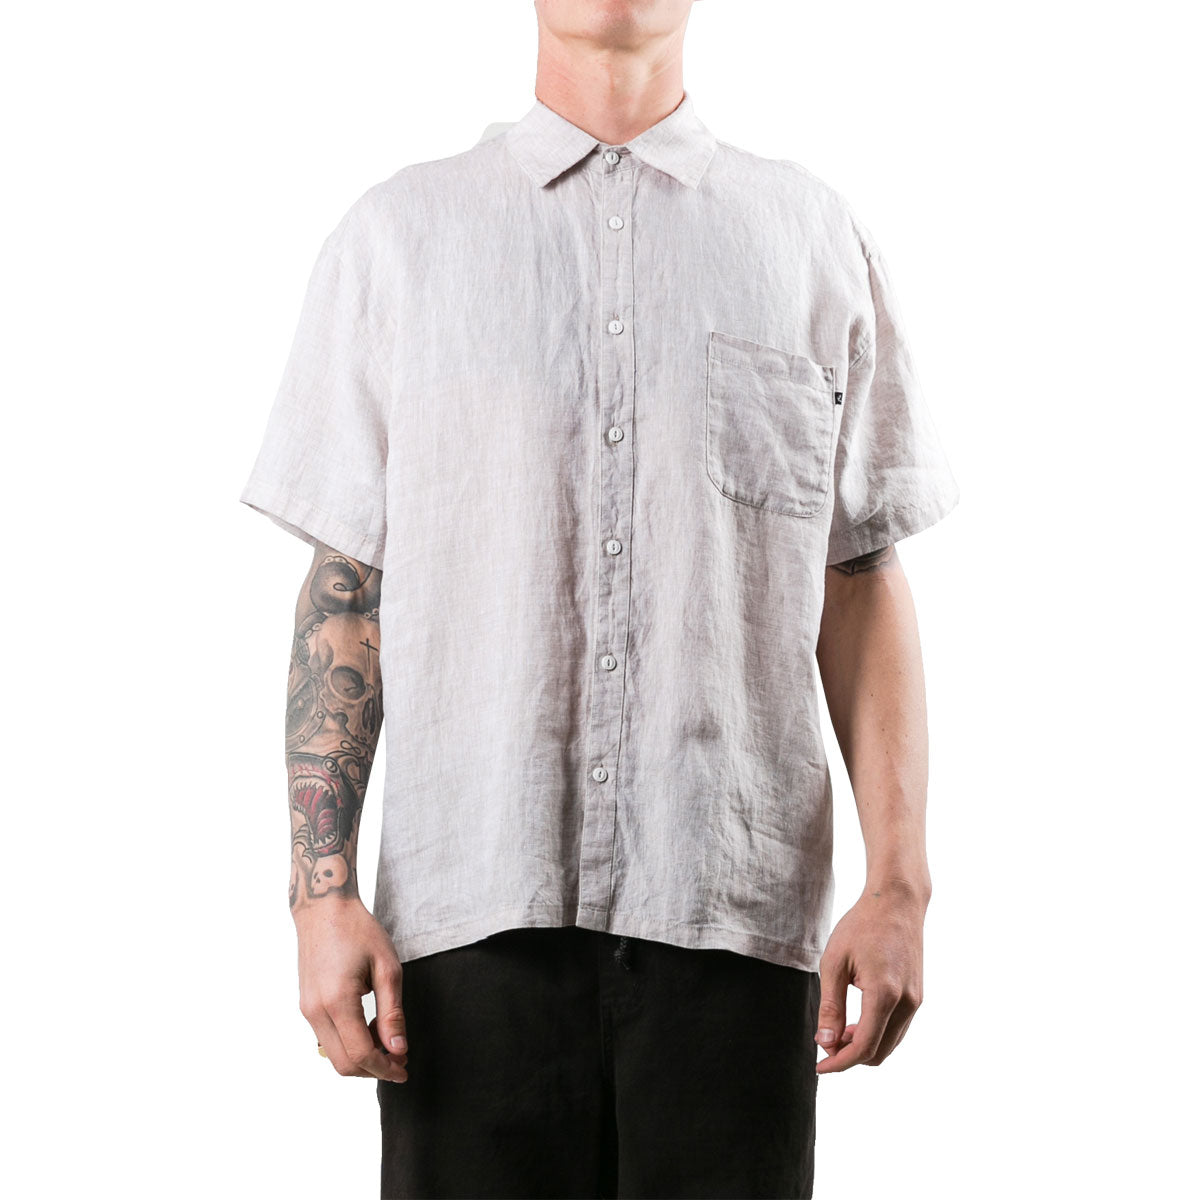 Rusty Men's Covers Button Up Short-Sleeve Shirts-WSM0818-SOG